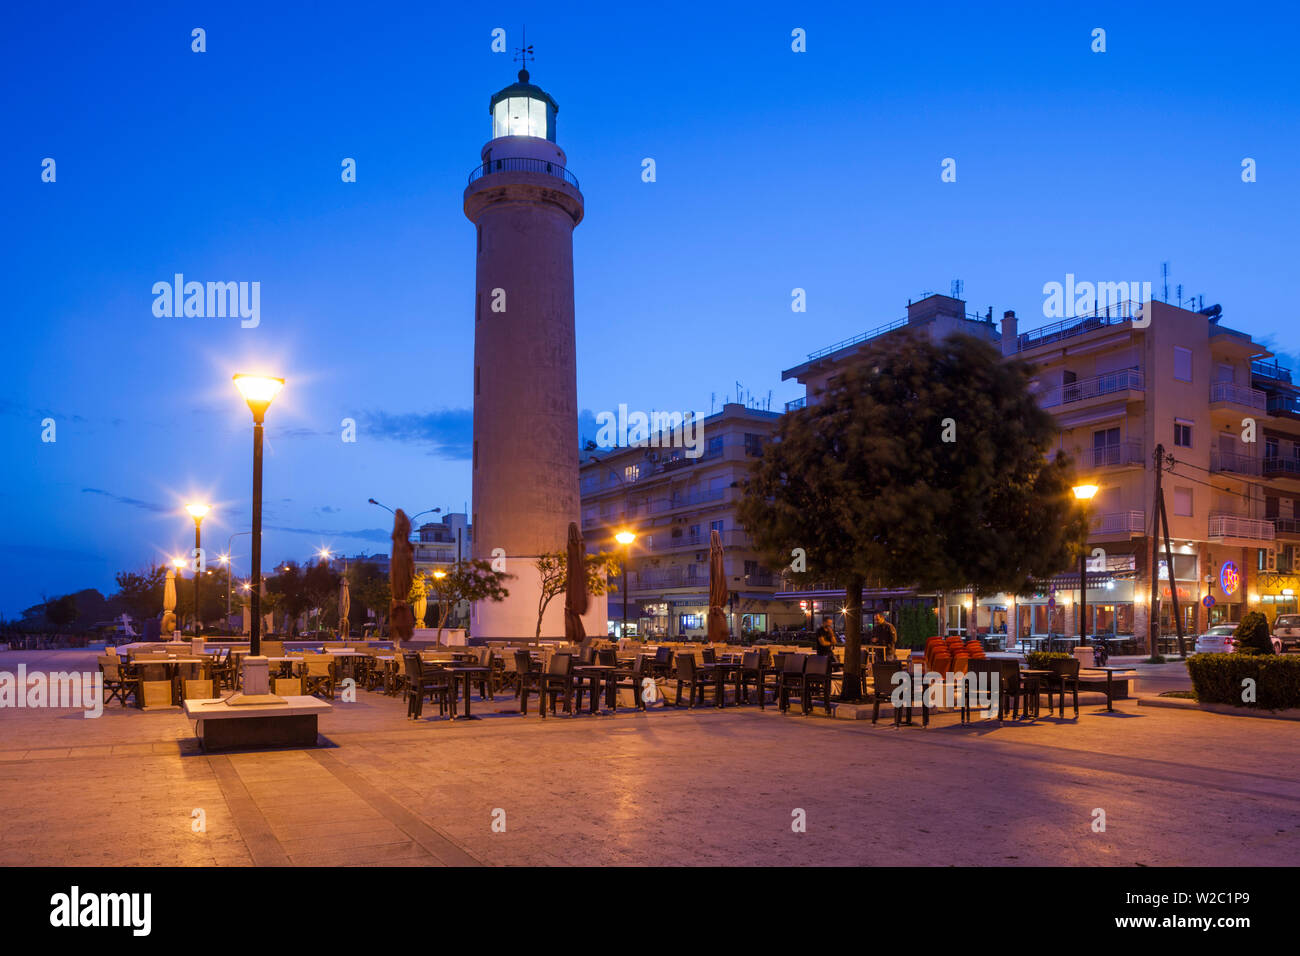 Greece, East Macedonia and Thrace Region, Alexandroupoli, the town lighthouse - Stock Image